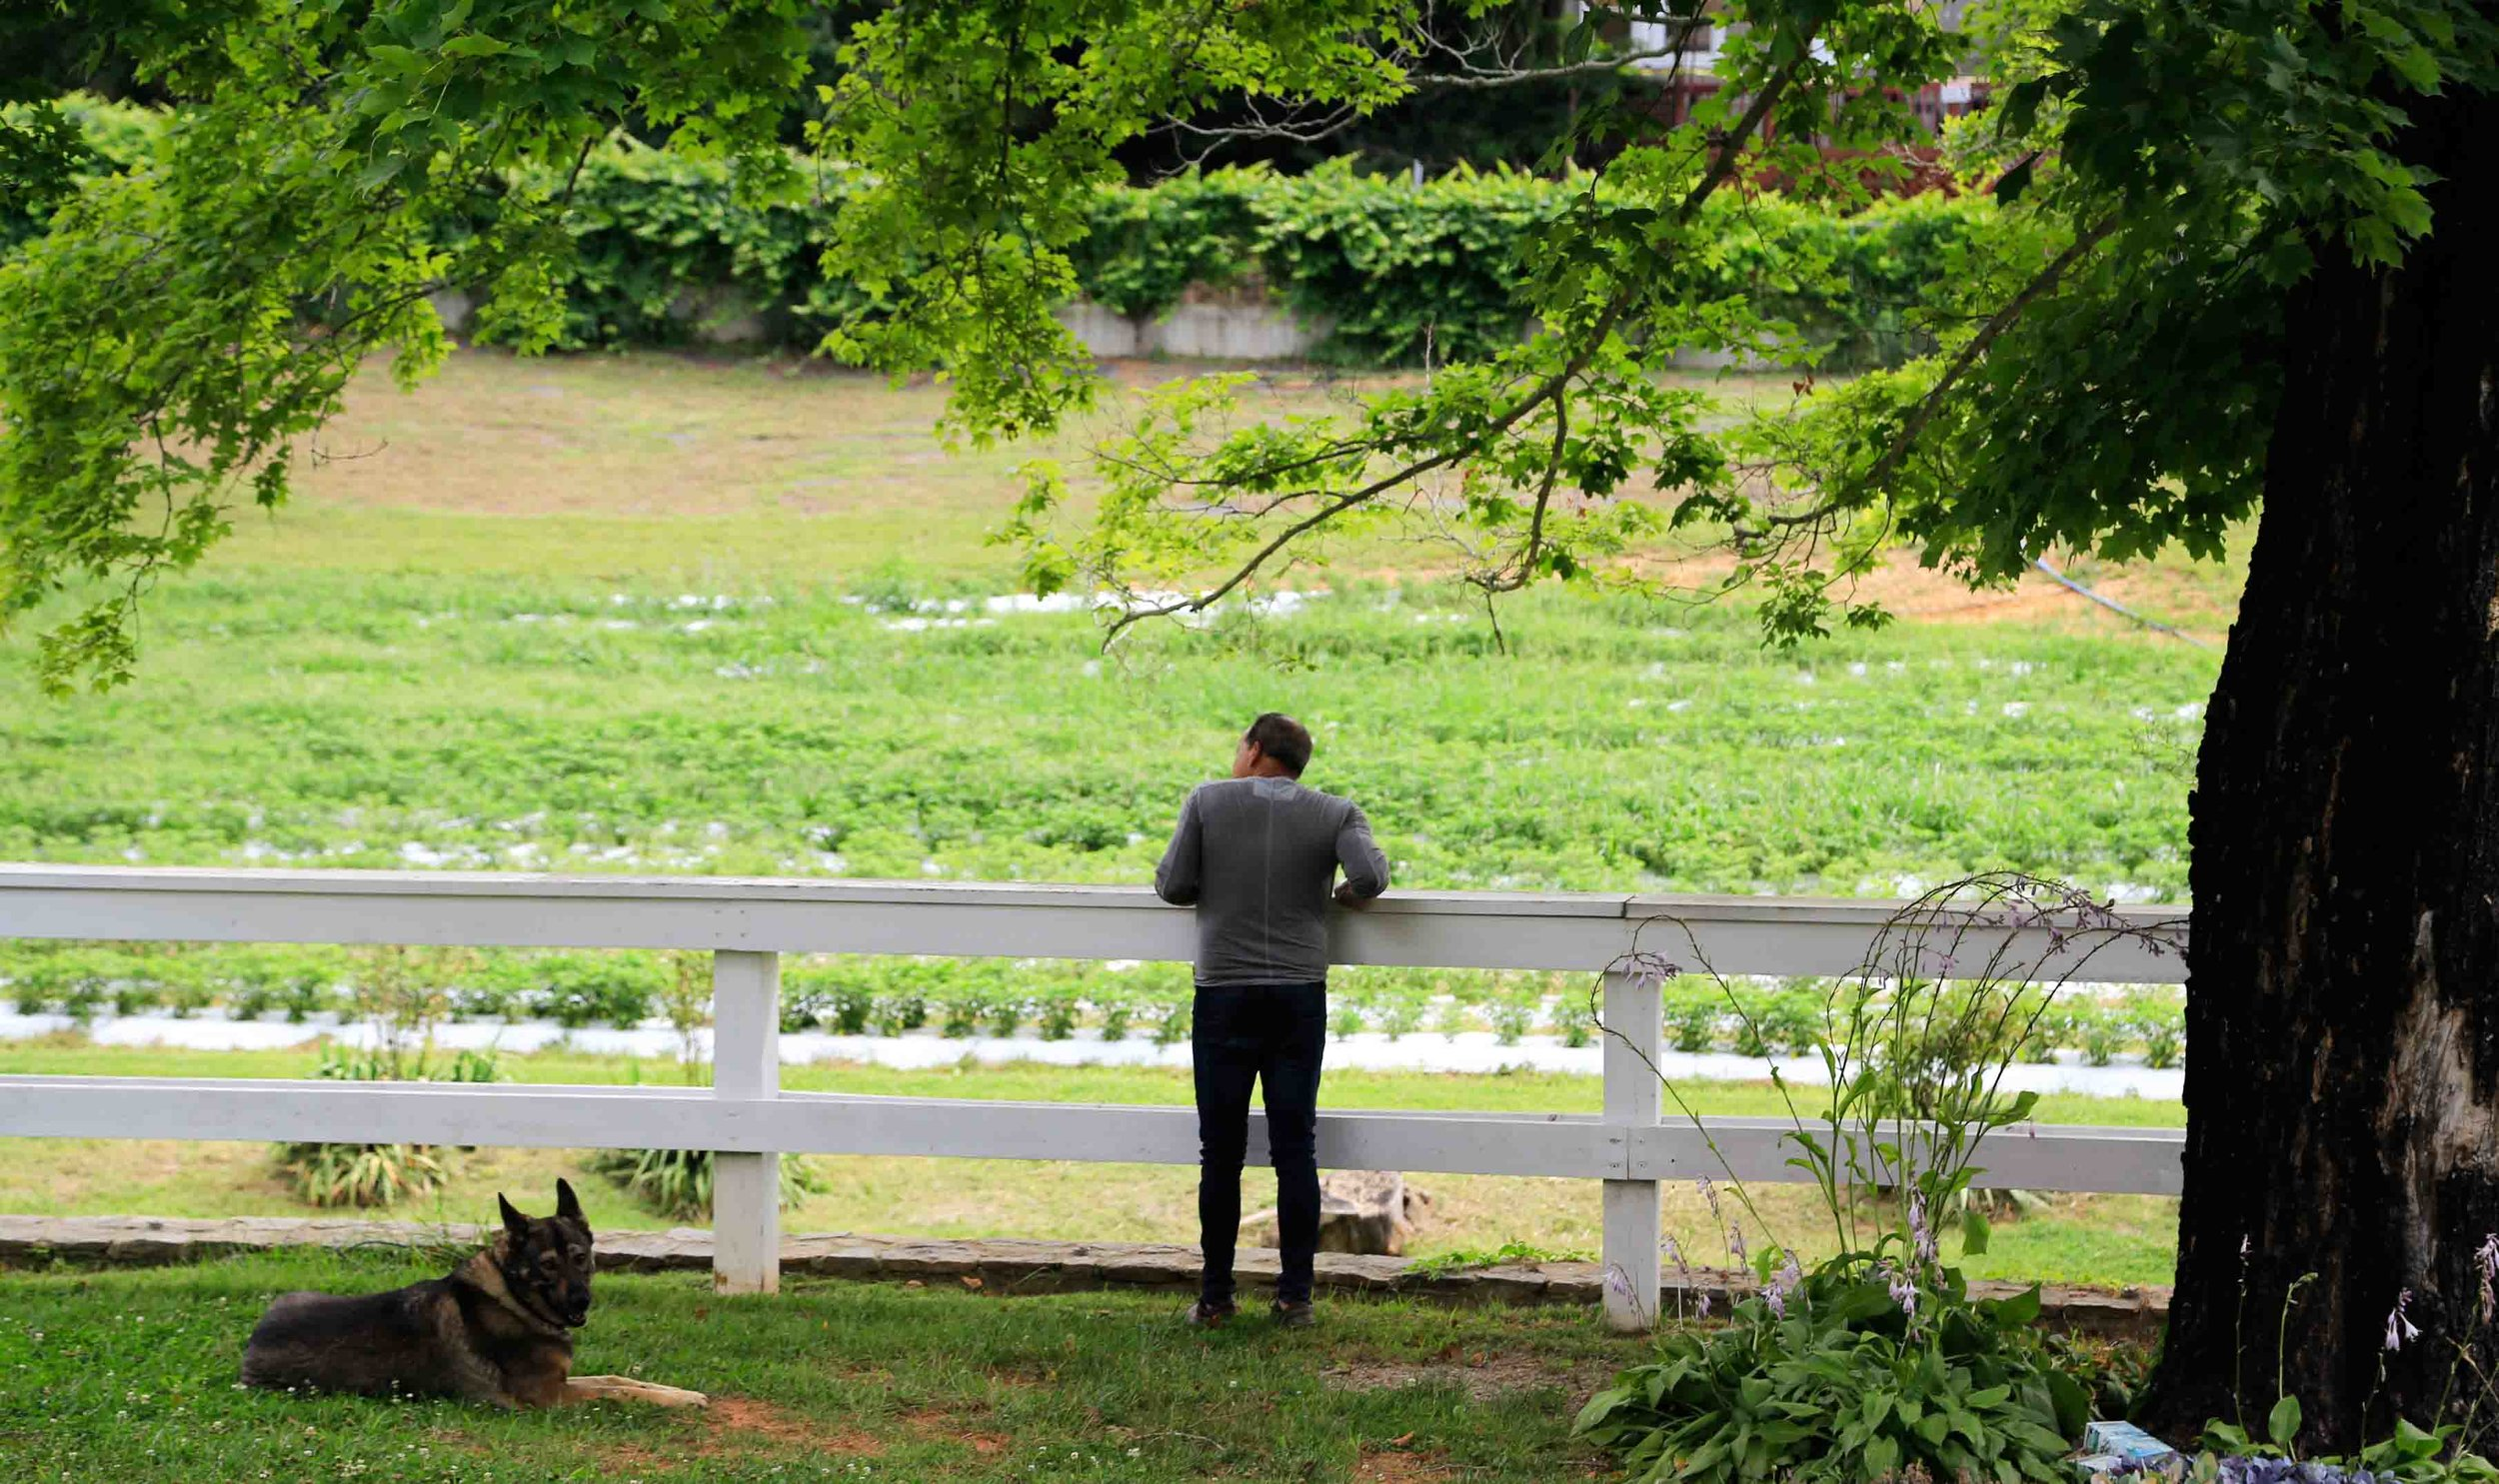 44_surveying front peppers.jpg